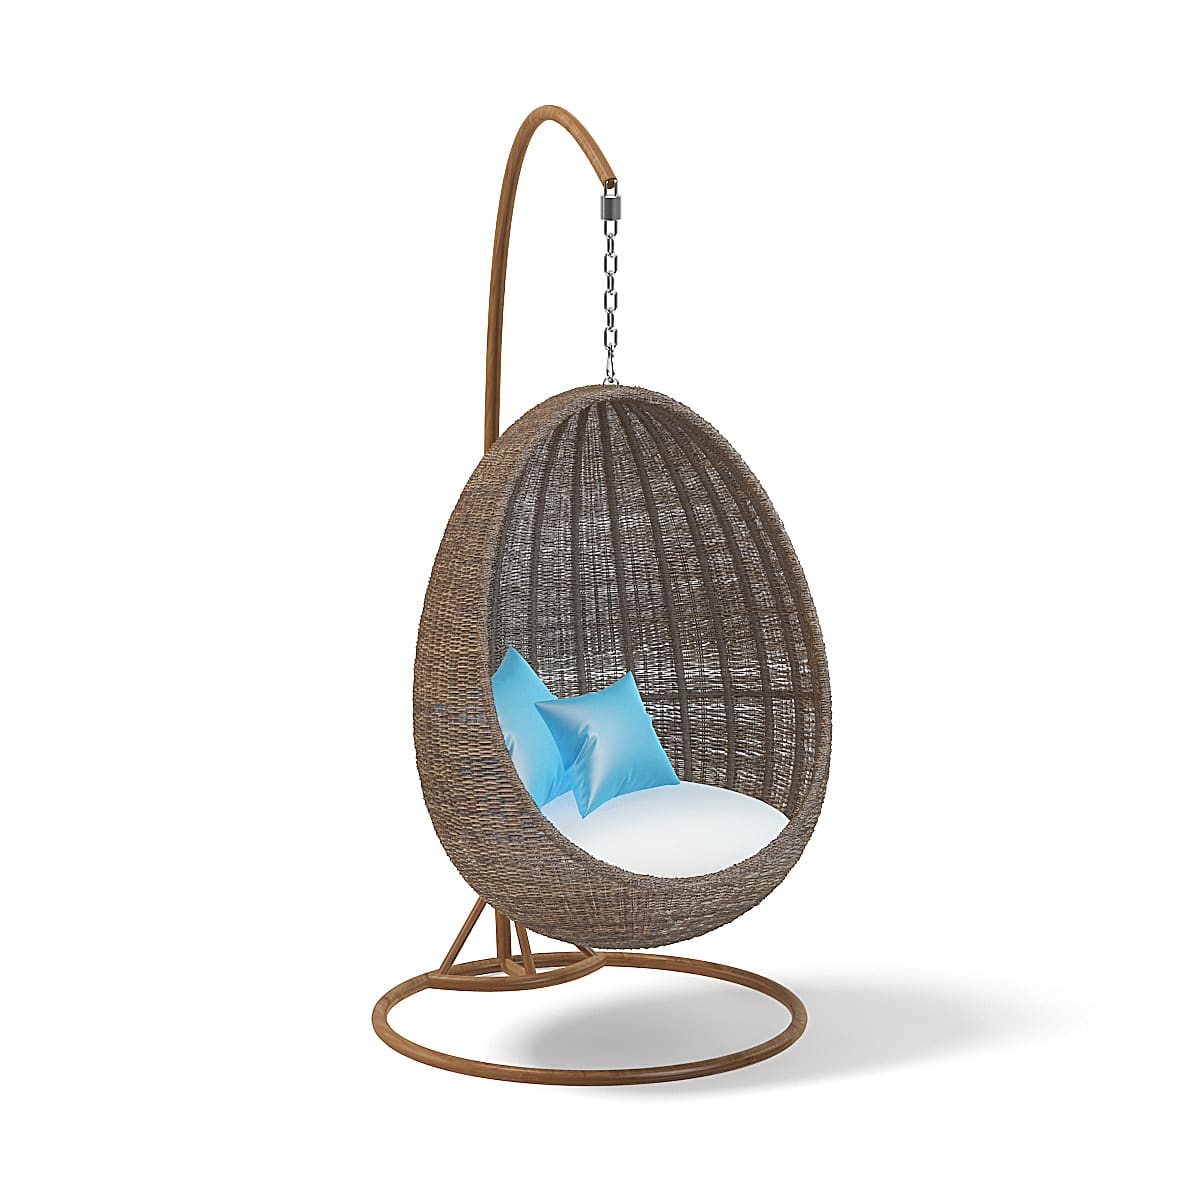 Wicker Hanging Chair 3d Model Cgaxis 3d Models Store